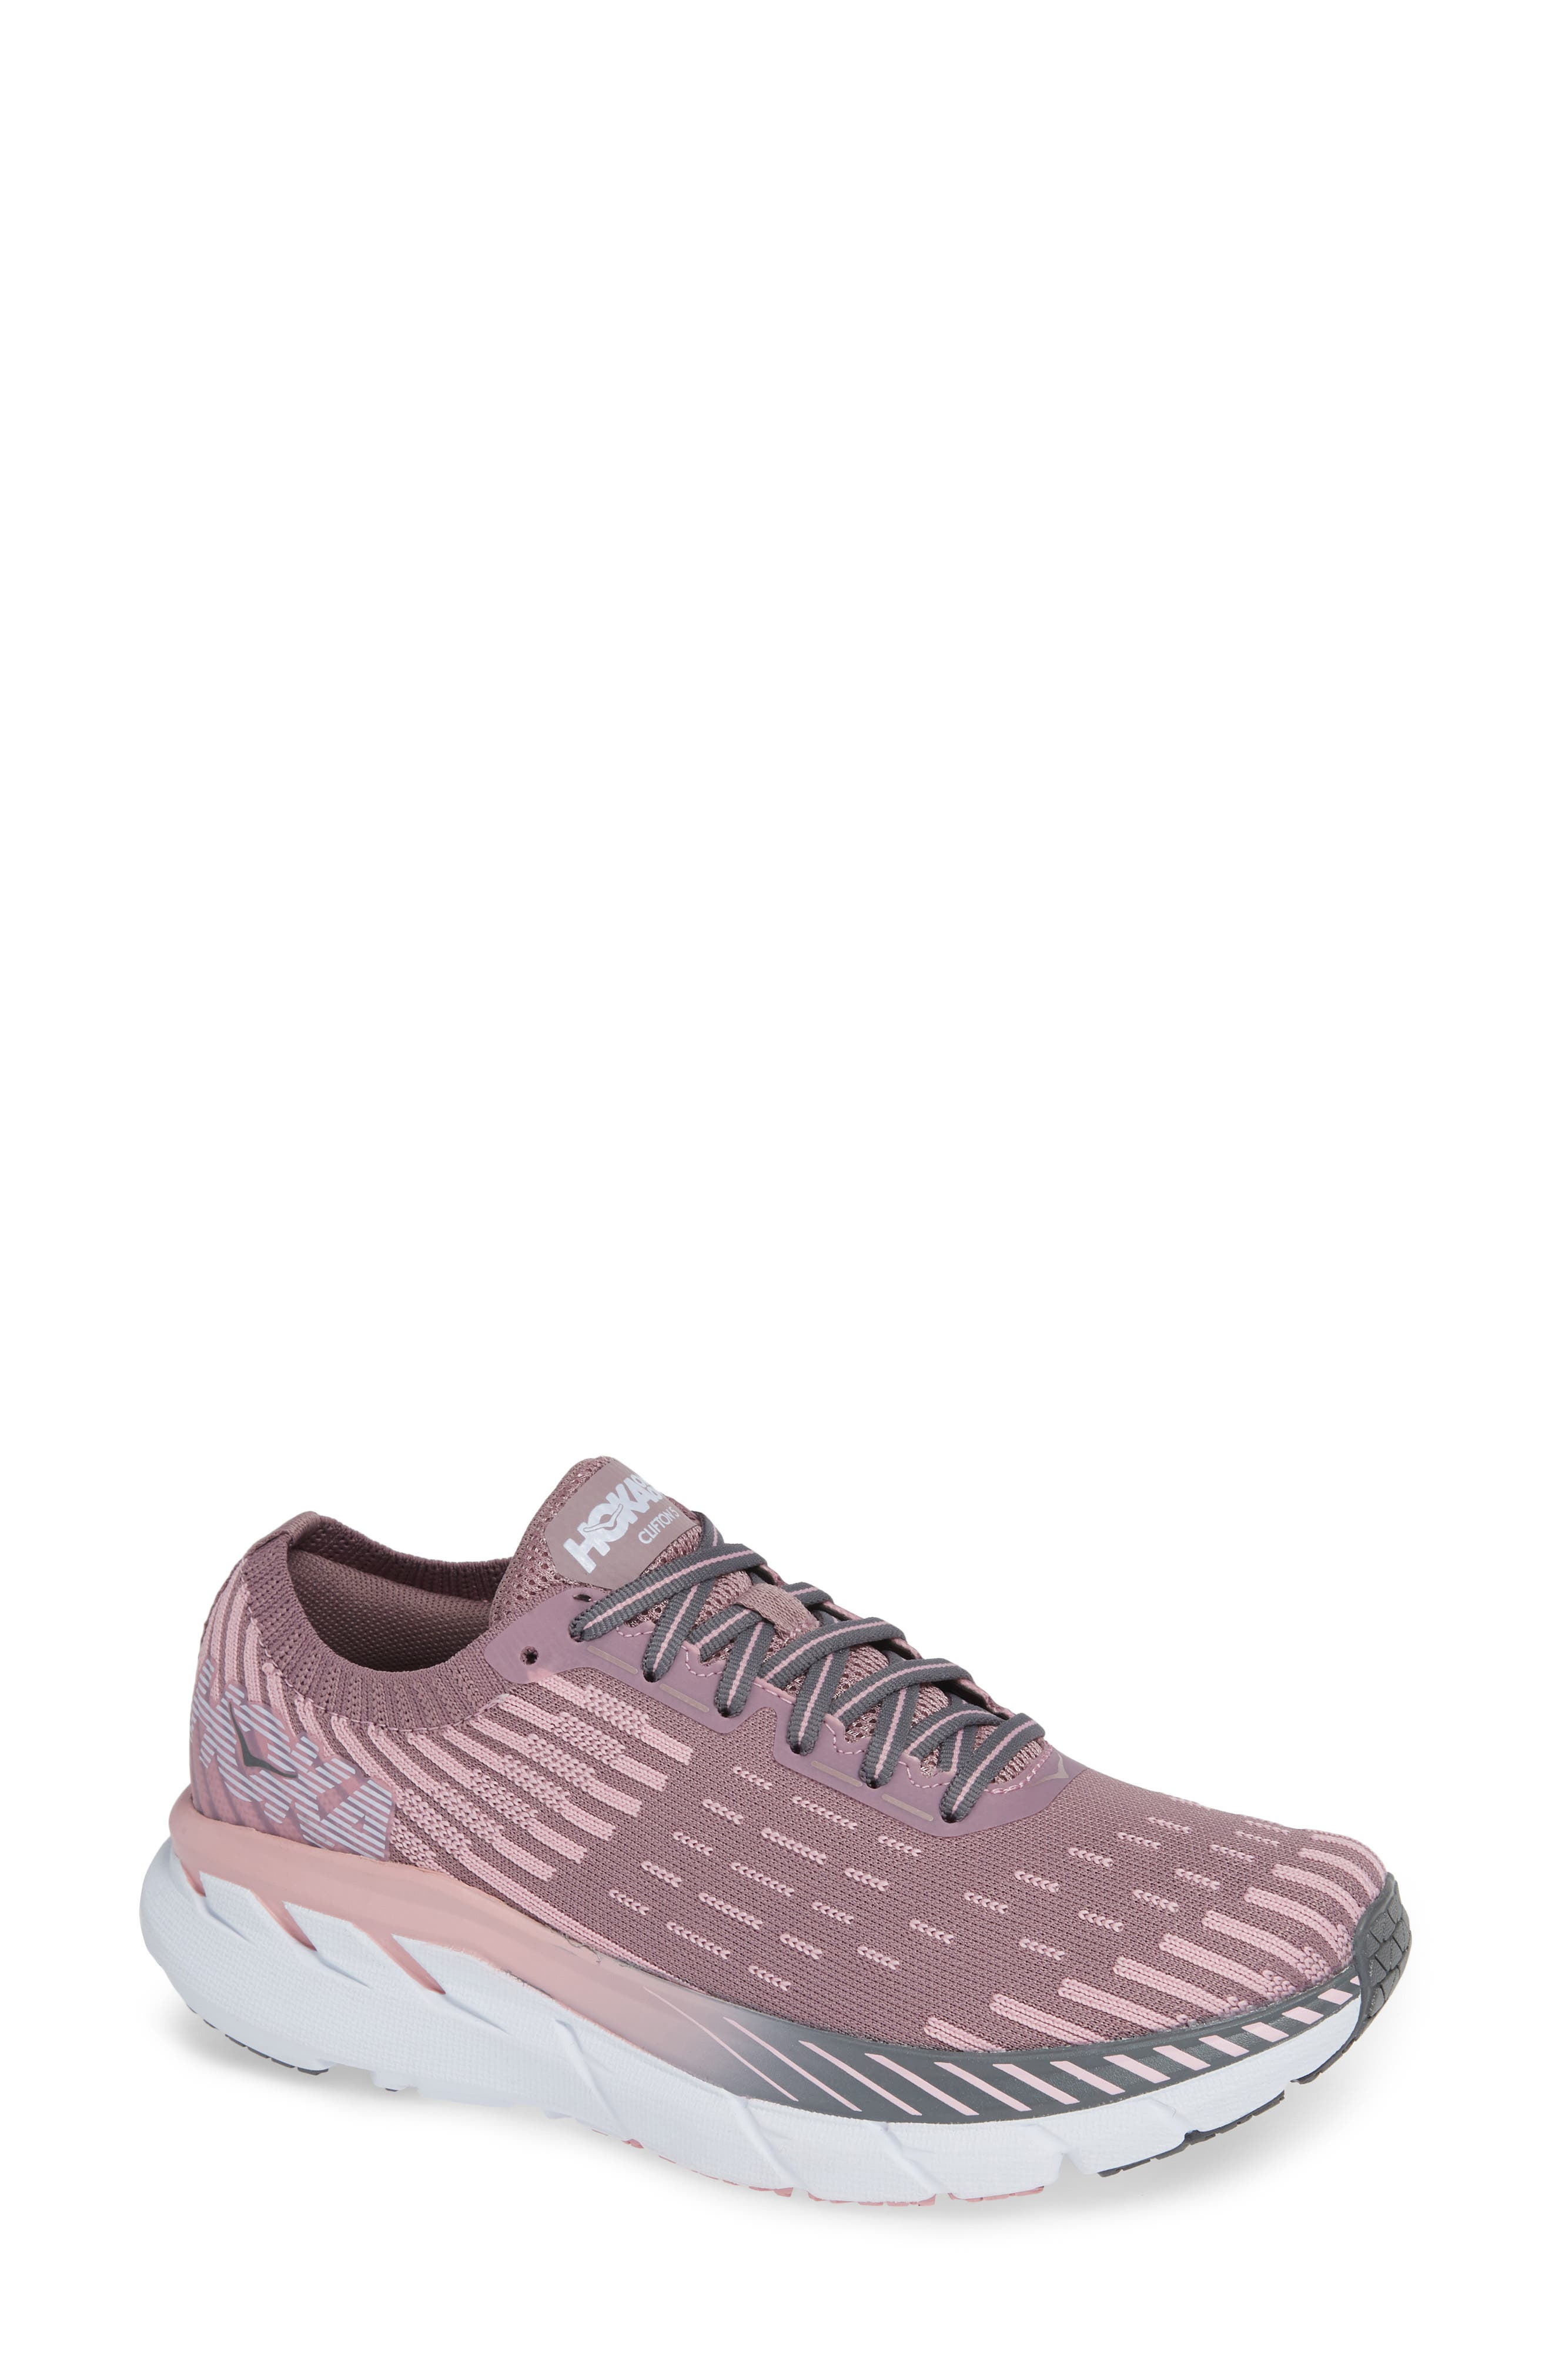 HOKA ONE ONE Clifton 5 Knit Running Shoe in Cameo/ Pink Toadstool